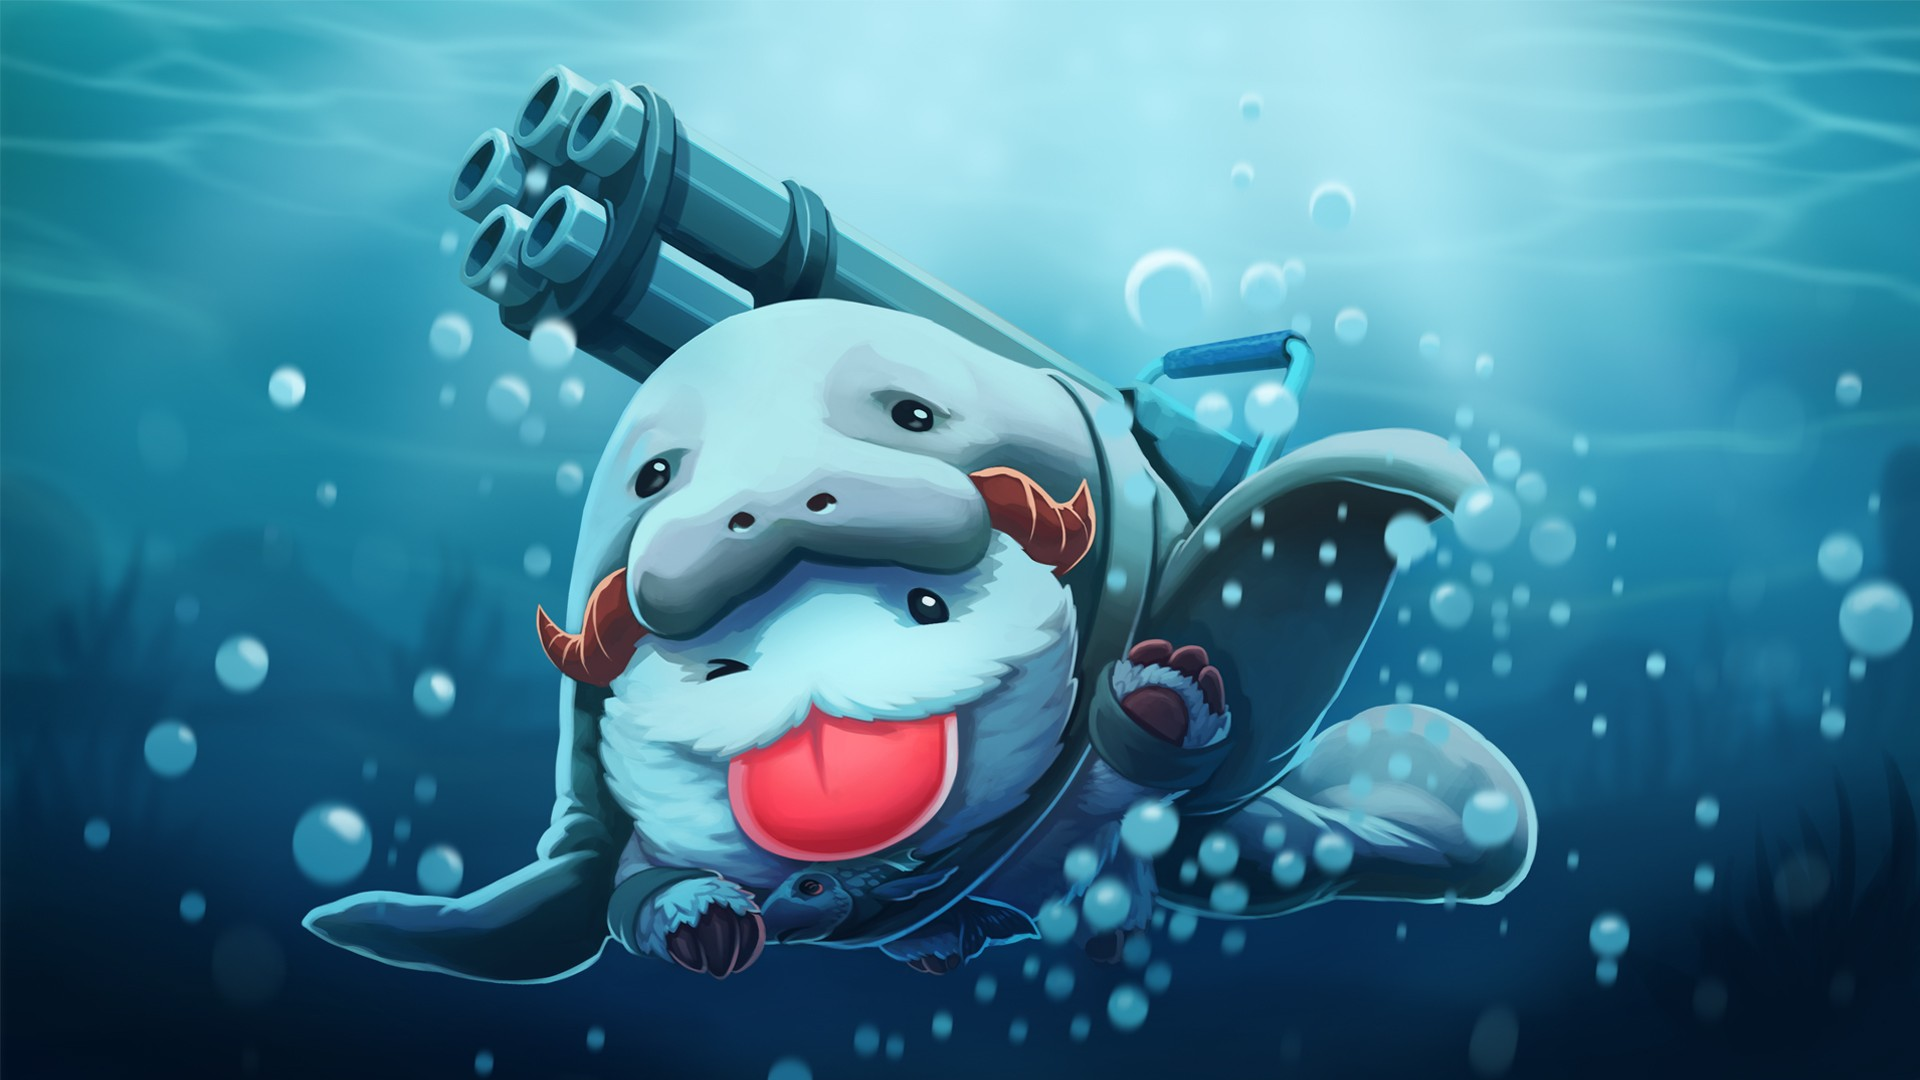 pc gaming league of legends poro